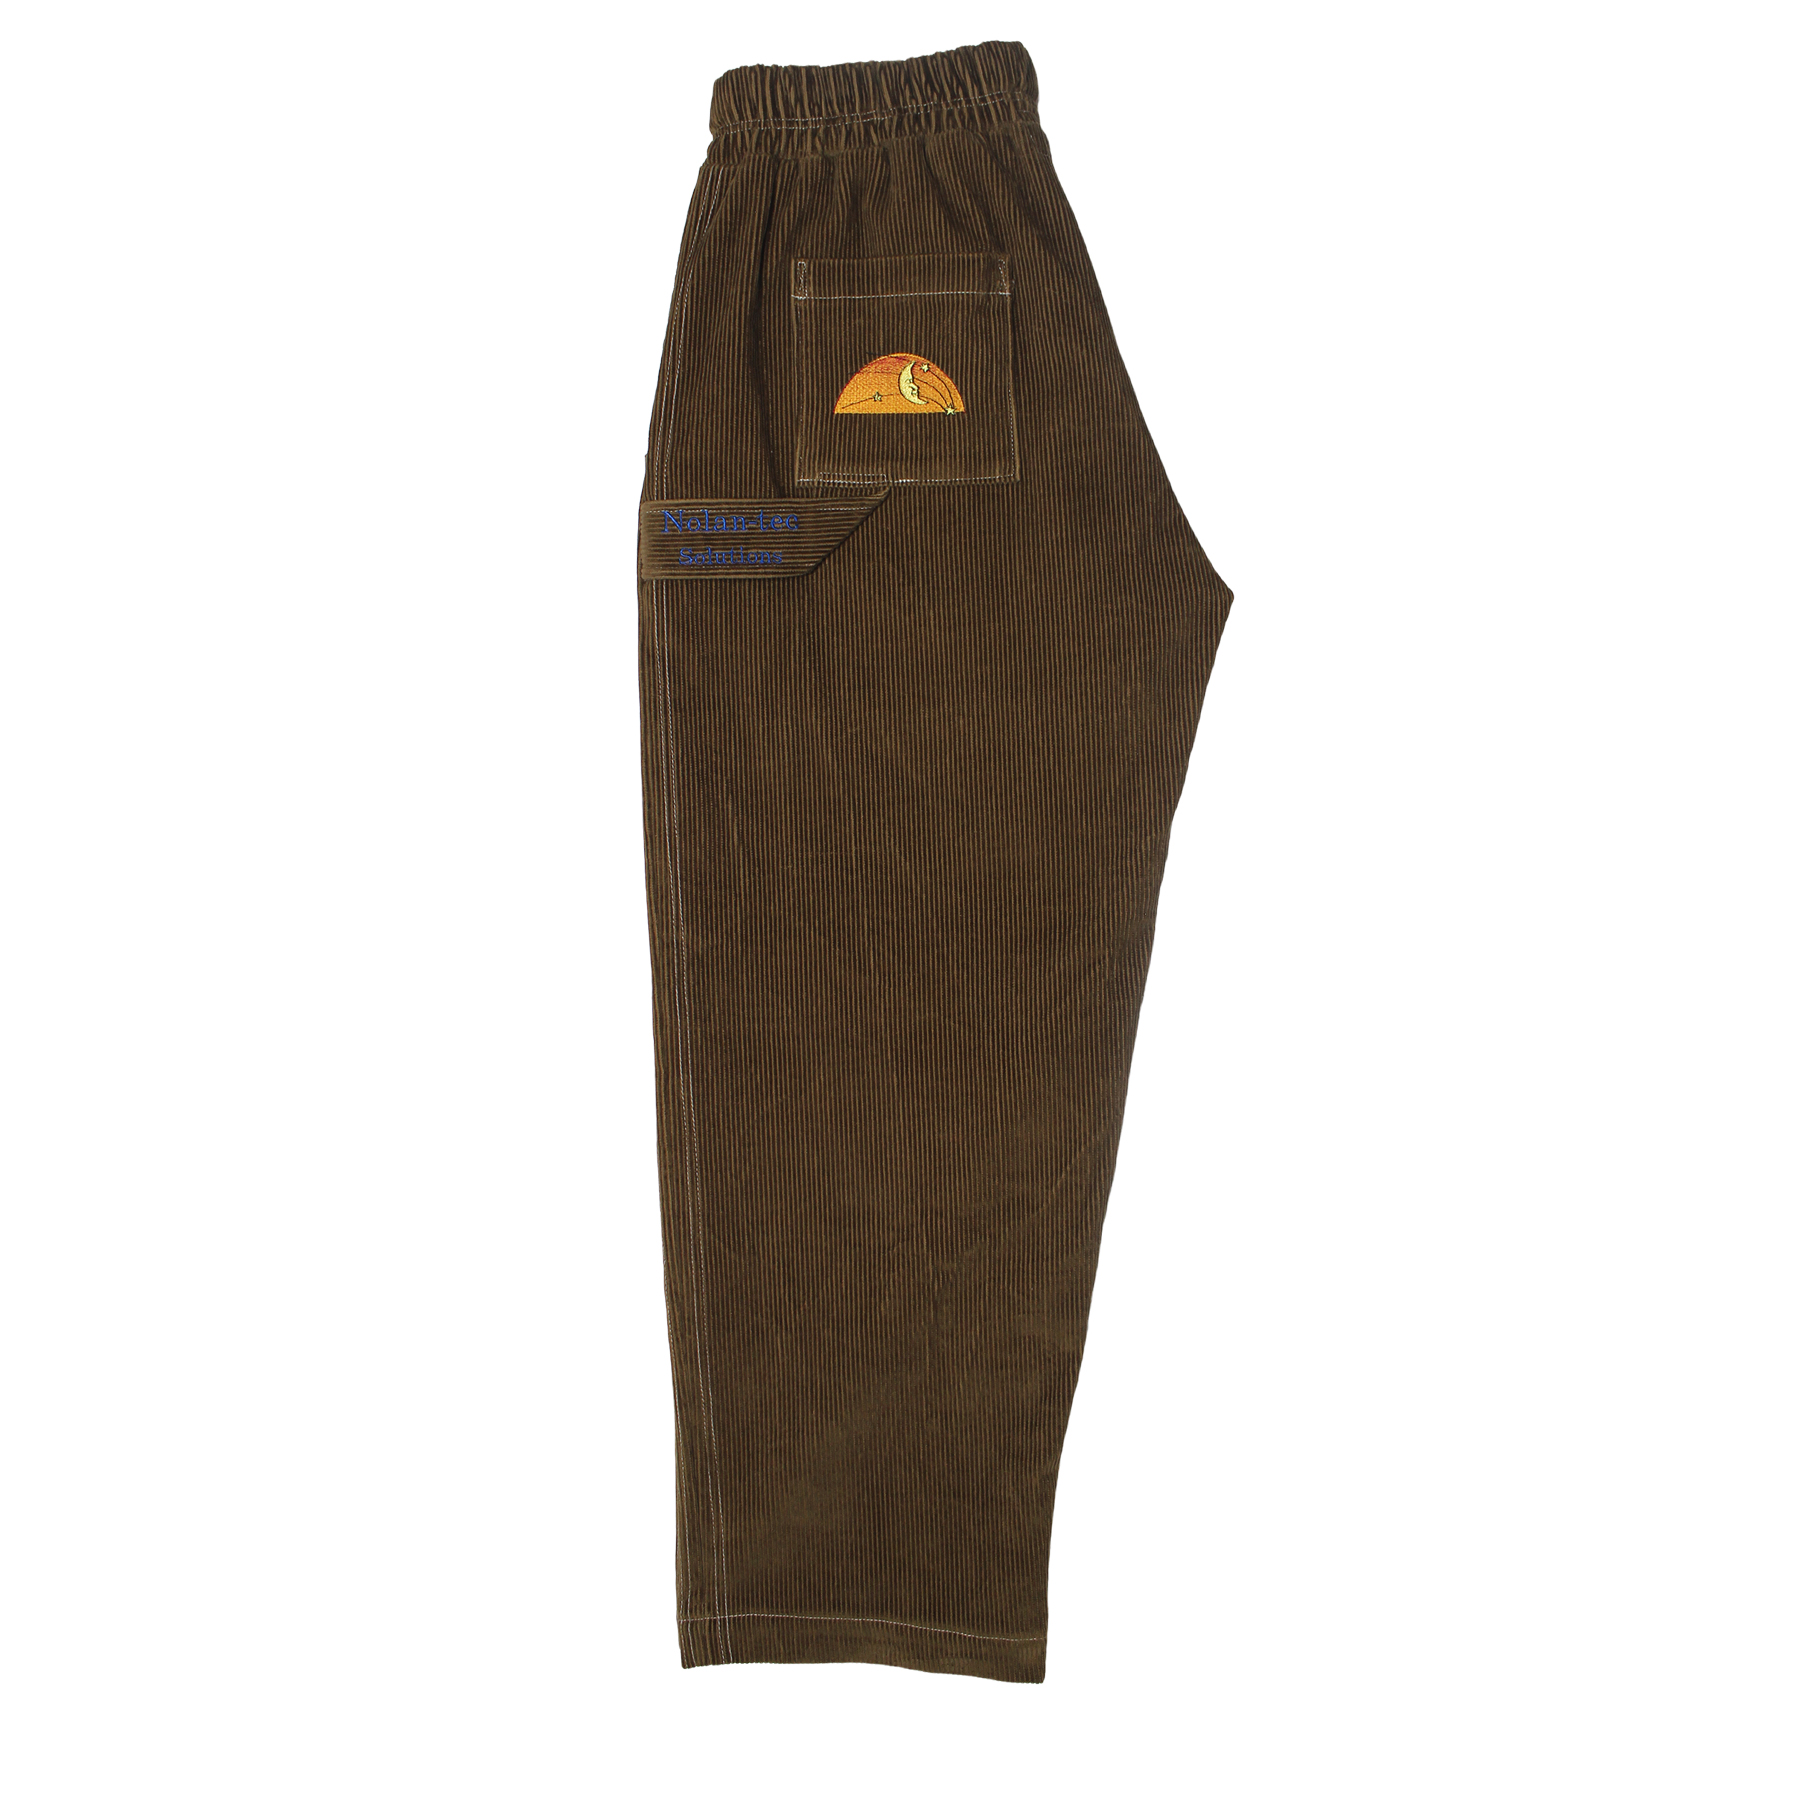 Nolan Couture NTS Corduroy pant brown Side.jpg